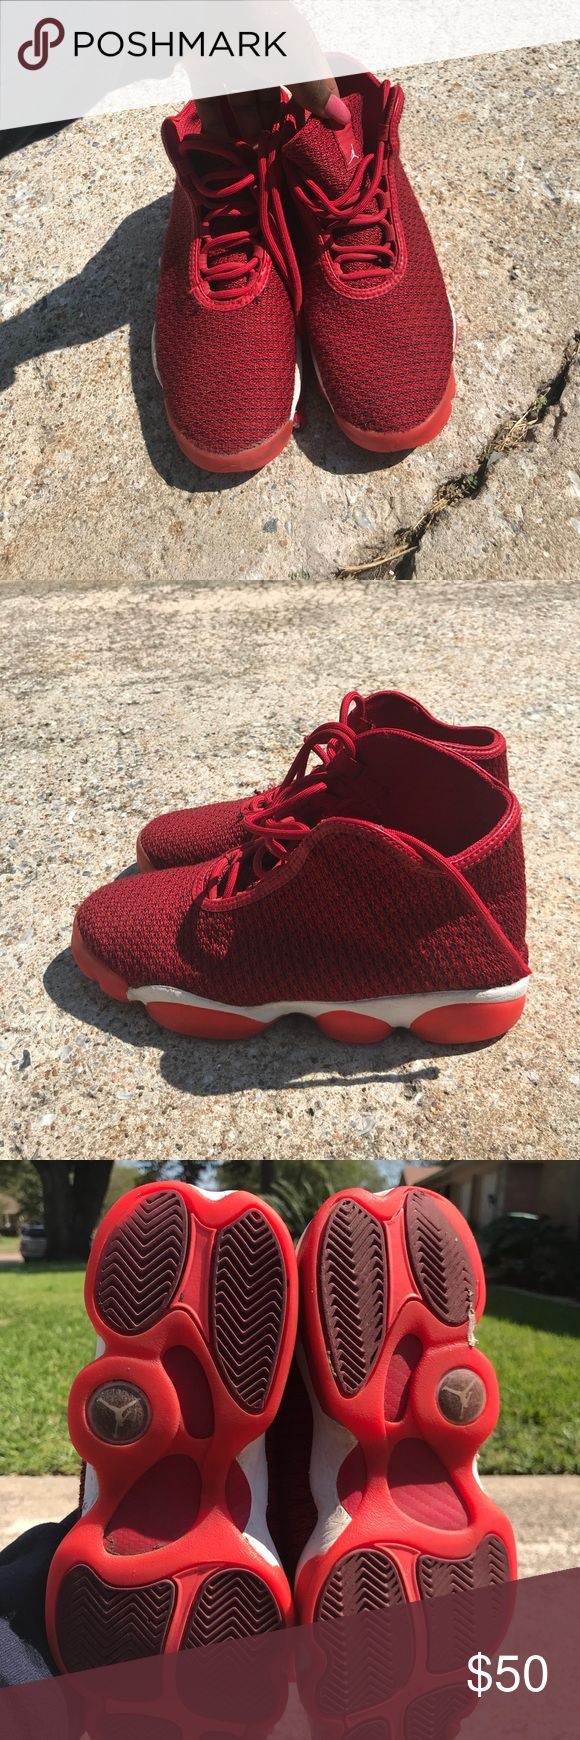 Size 7 Red Authentic Jordan's Size 7 Red Authentic Jordan's  Good condition  Boys or Girls tennis shoes Jordan Shoes Sneakers